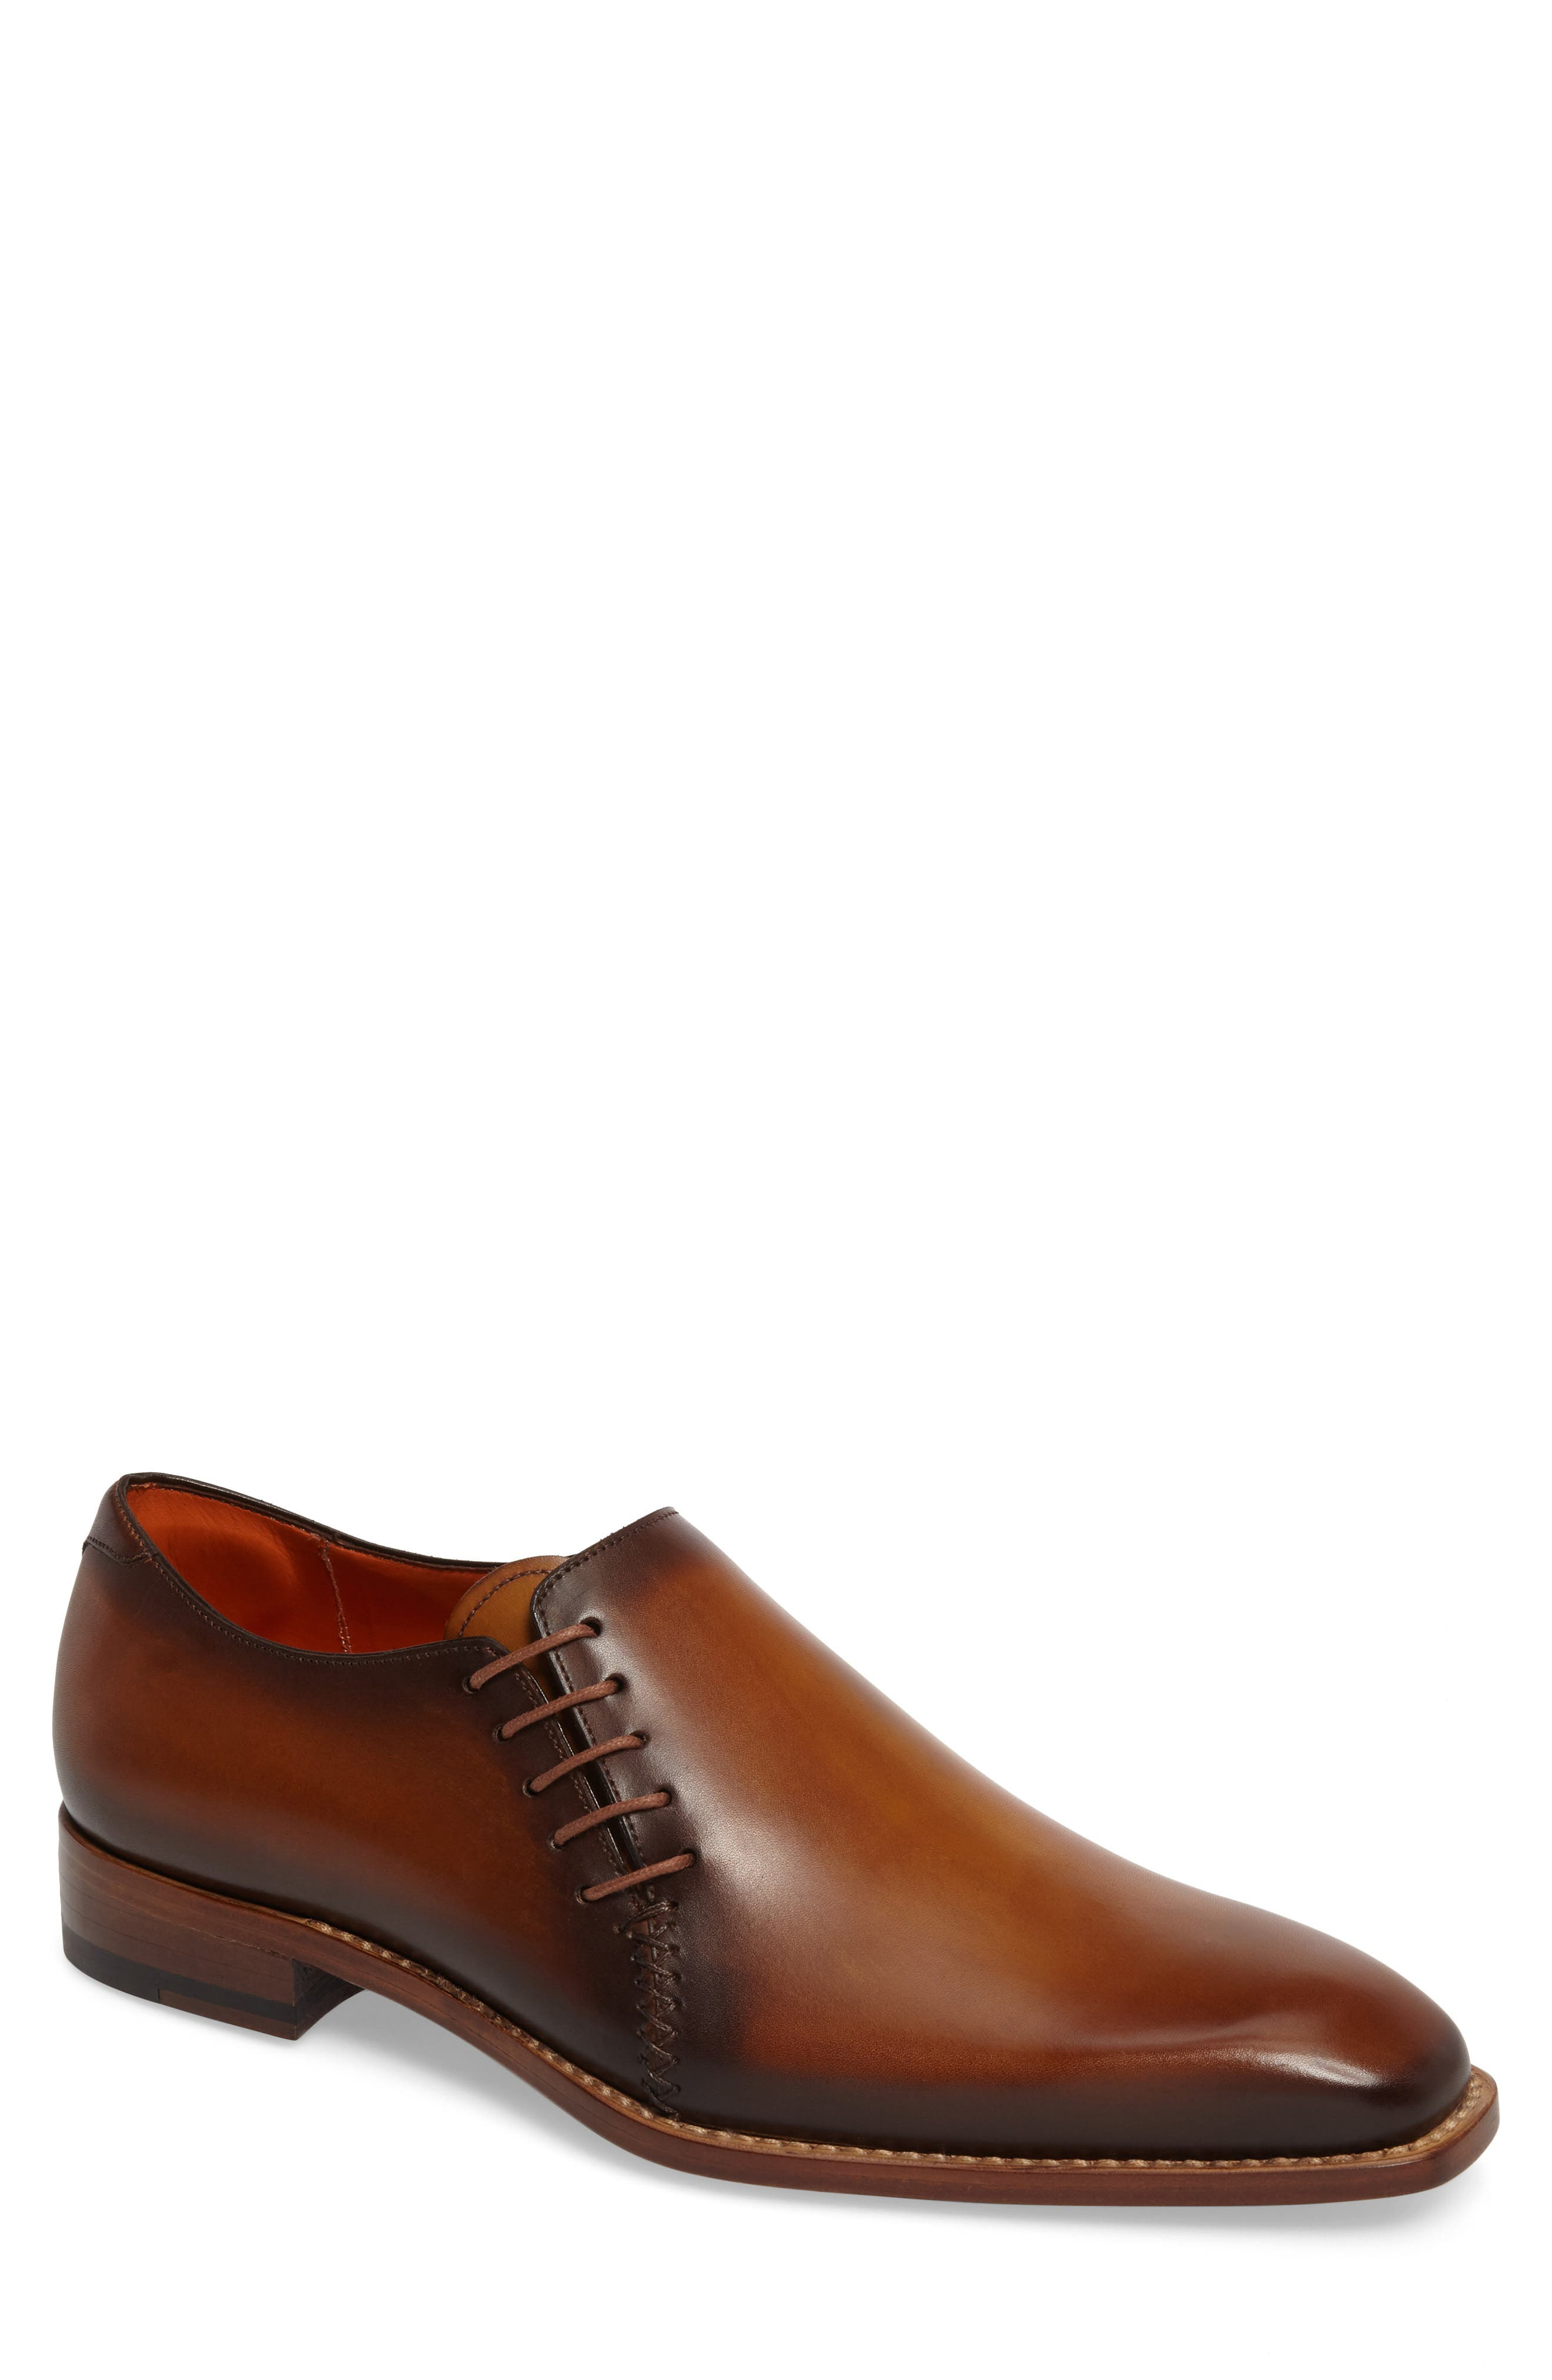 Master Wholecut Oxford,                             Main thumbnail 1, color,                             HONEY LEATHER